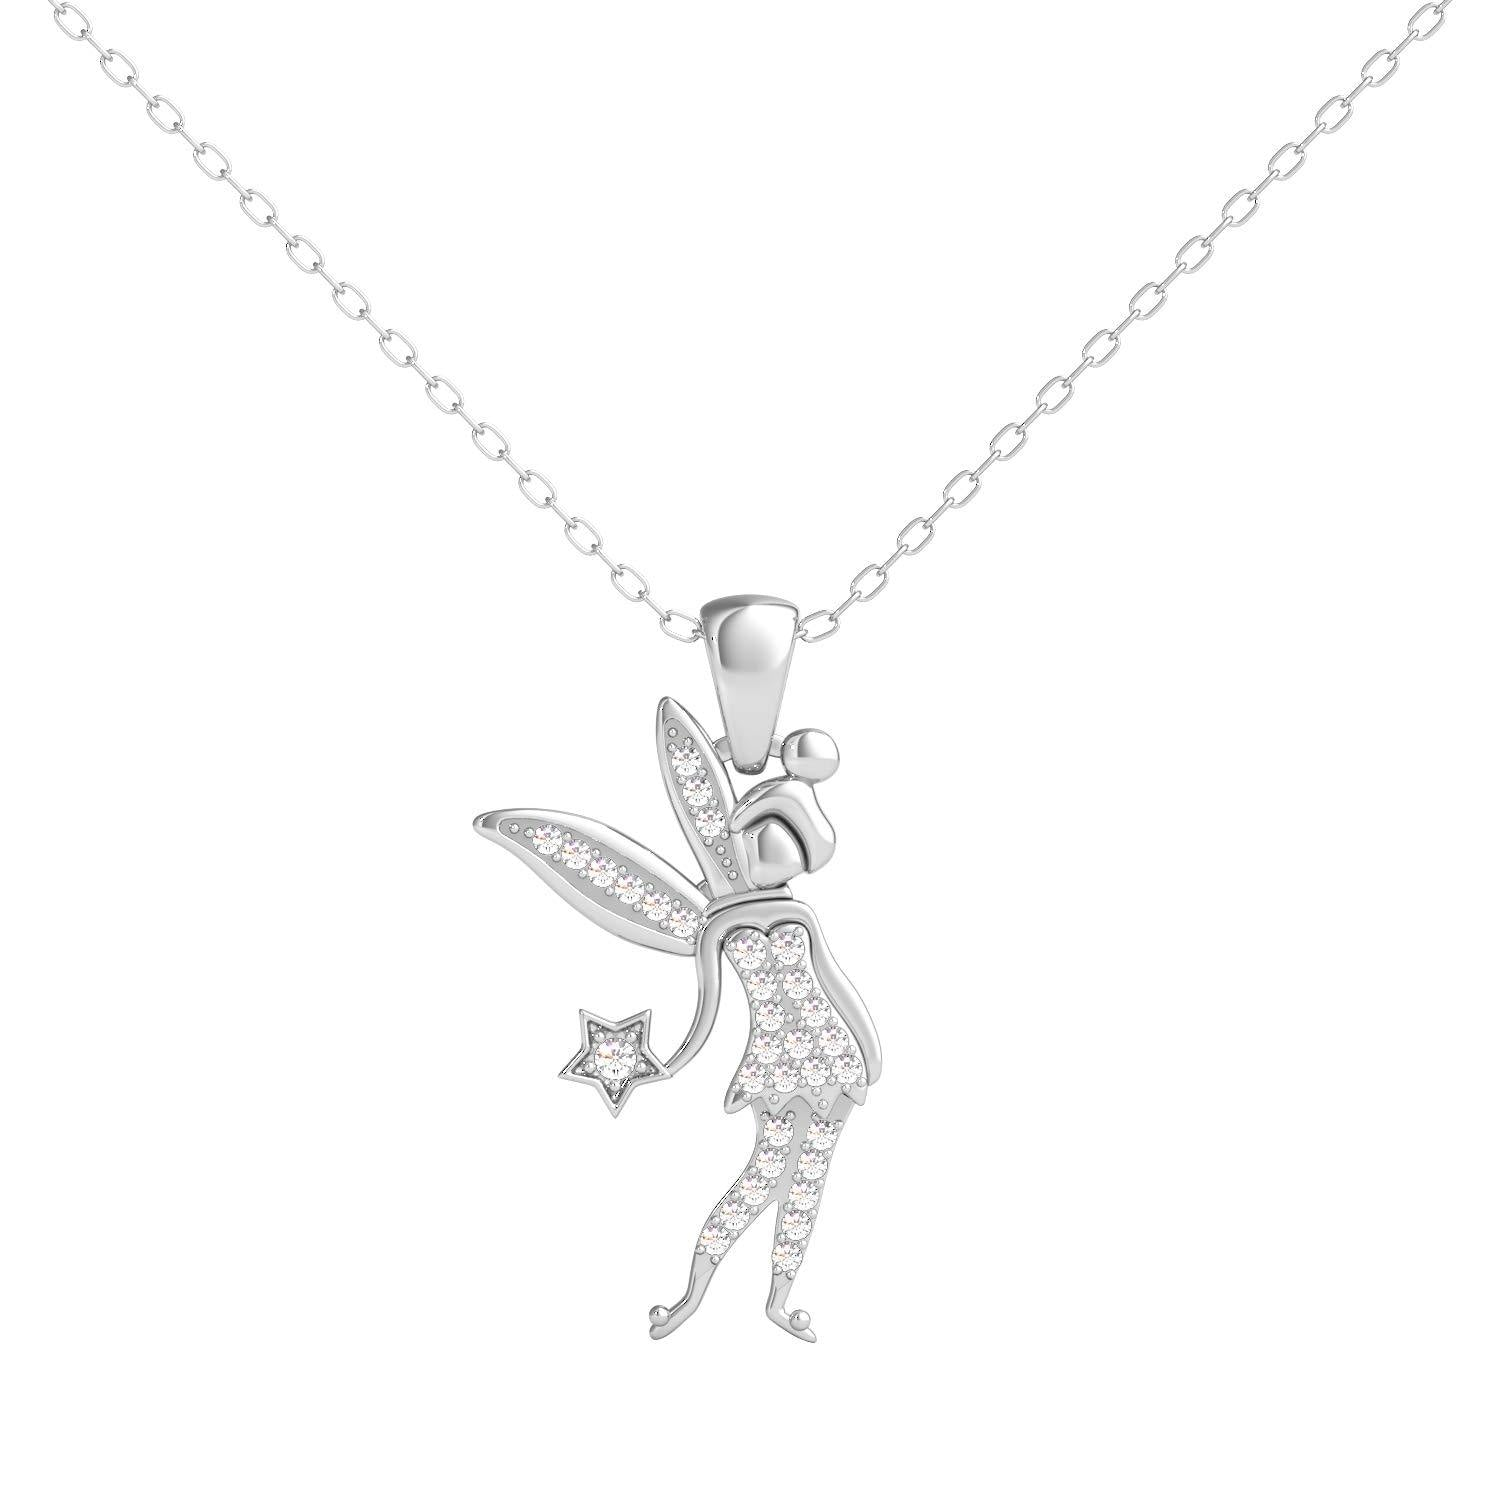 enchanted_disney-tinker-bell-white_diamond_disney_pendant-sterling_silver_1/10CTTW_1